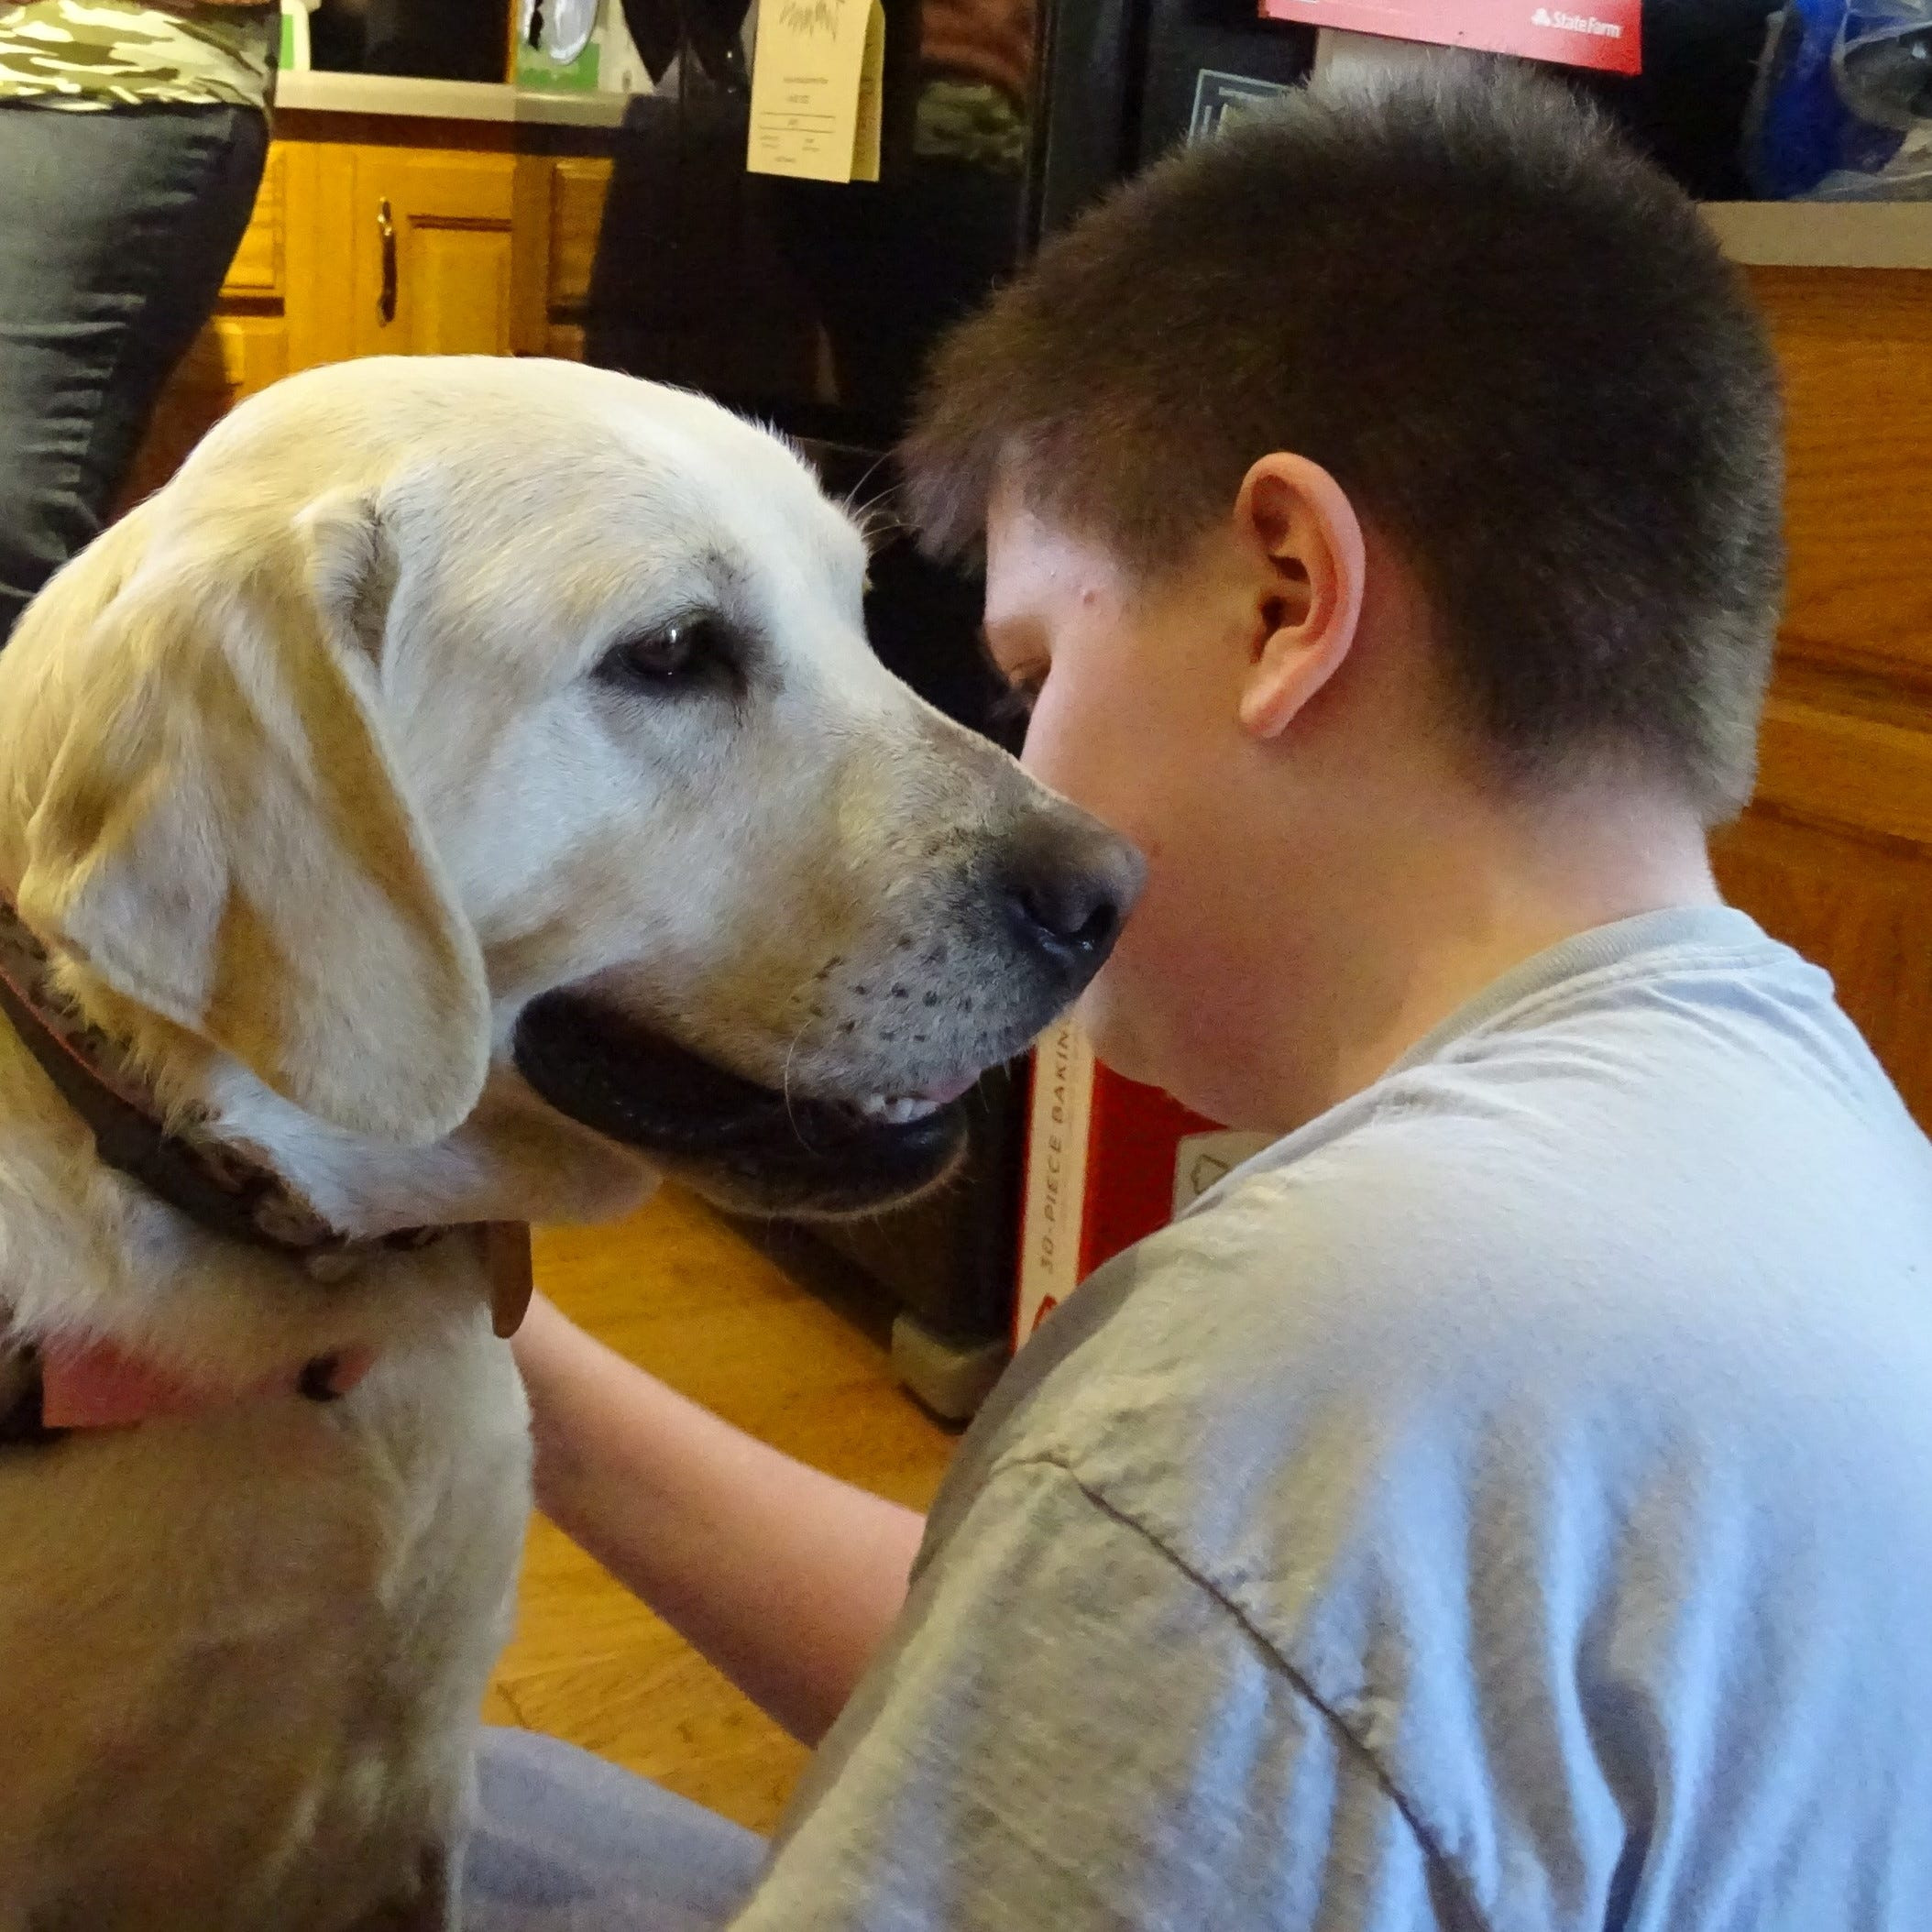 New Washington boy greets the service dog who's come to change his life